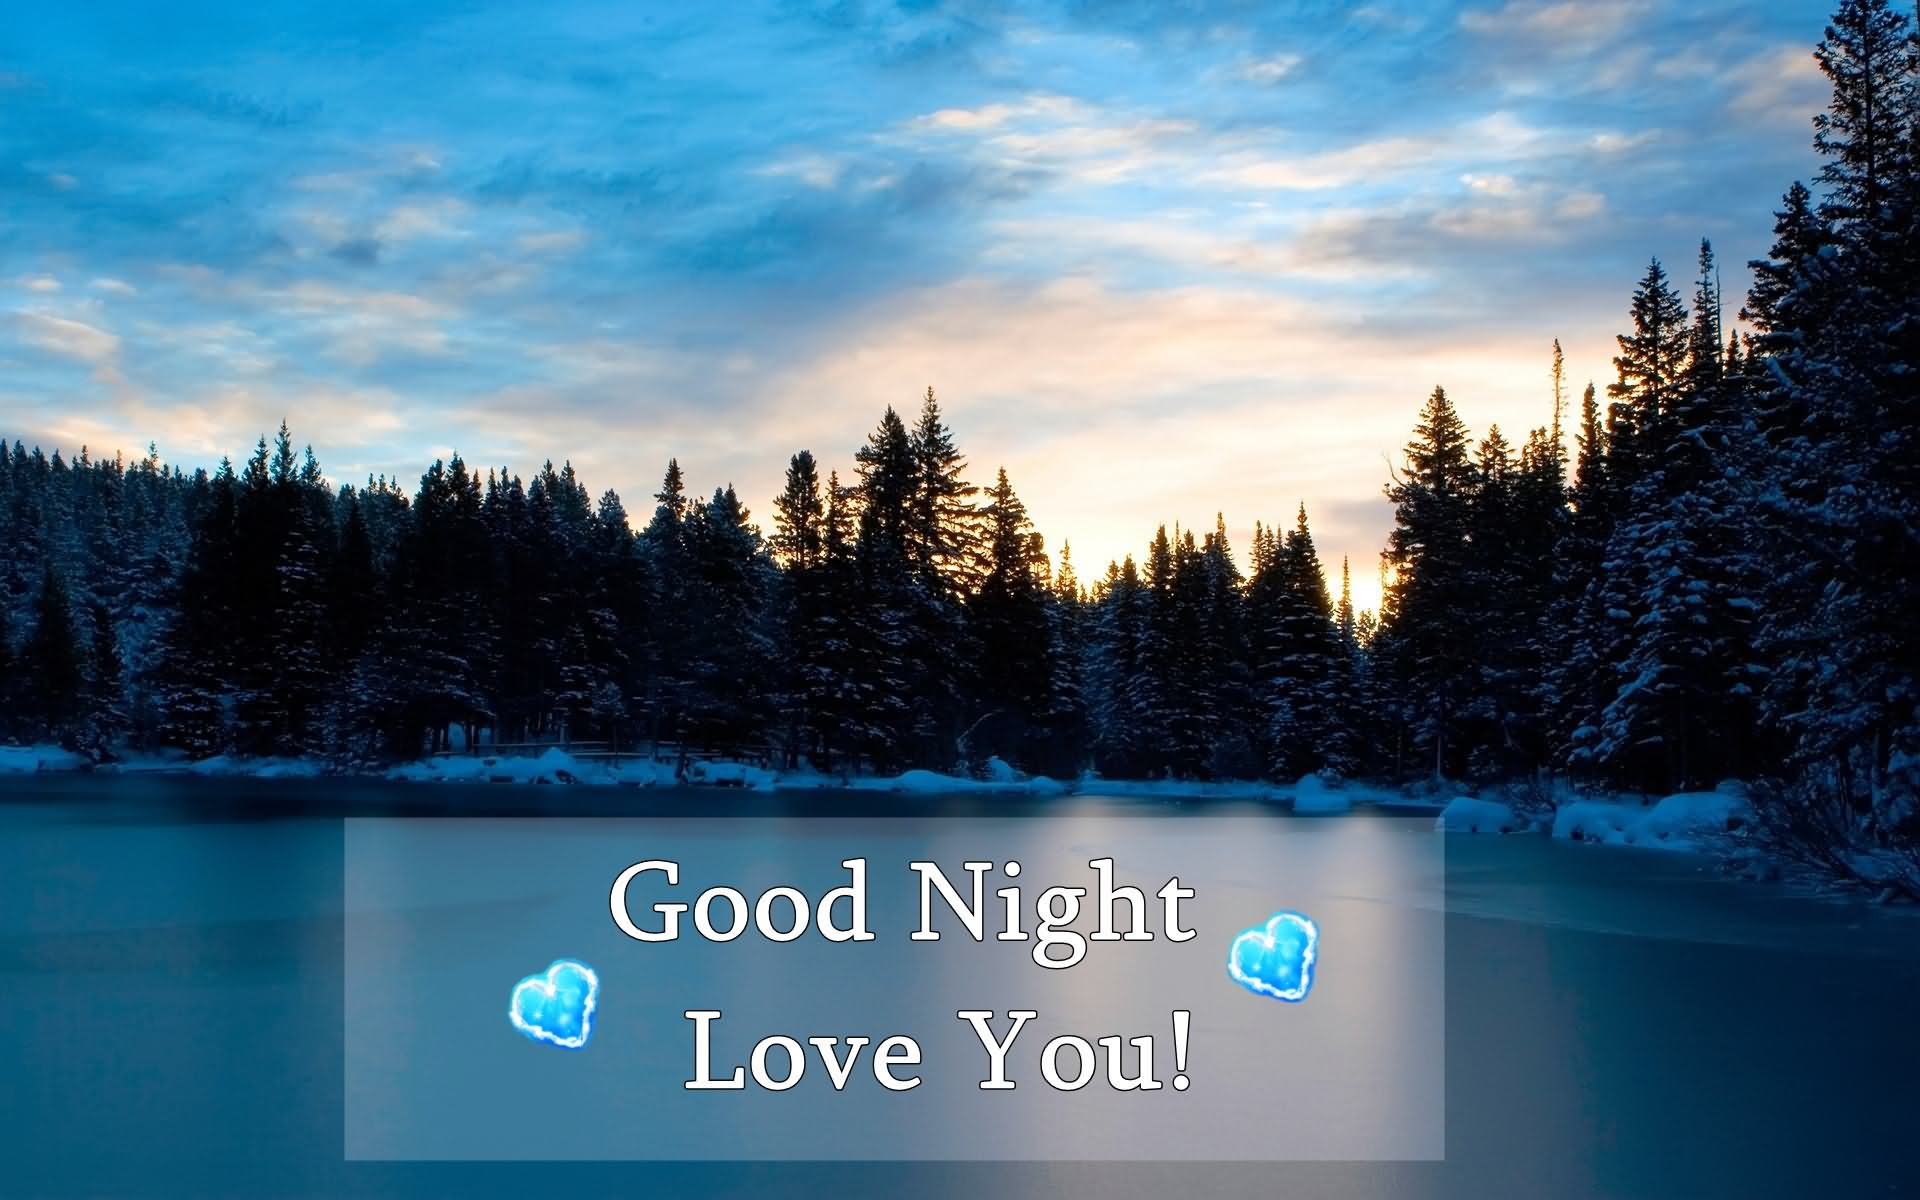 Good Night Wallpaper To Love : 15 Awesome Good Night Love Images